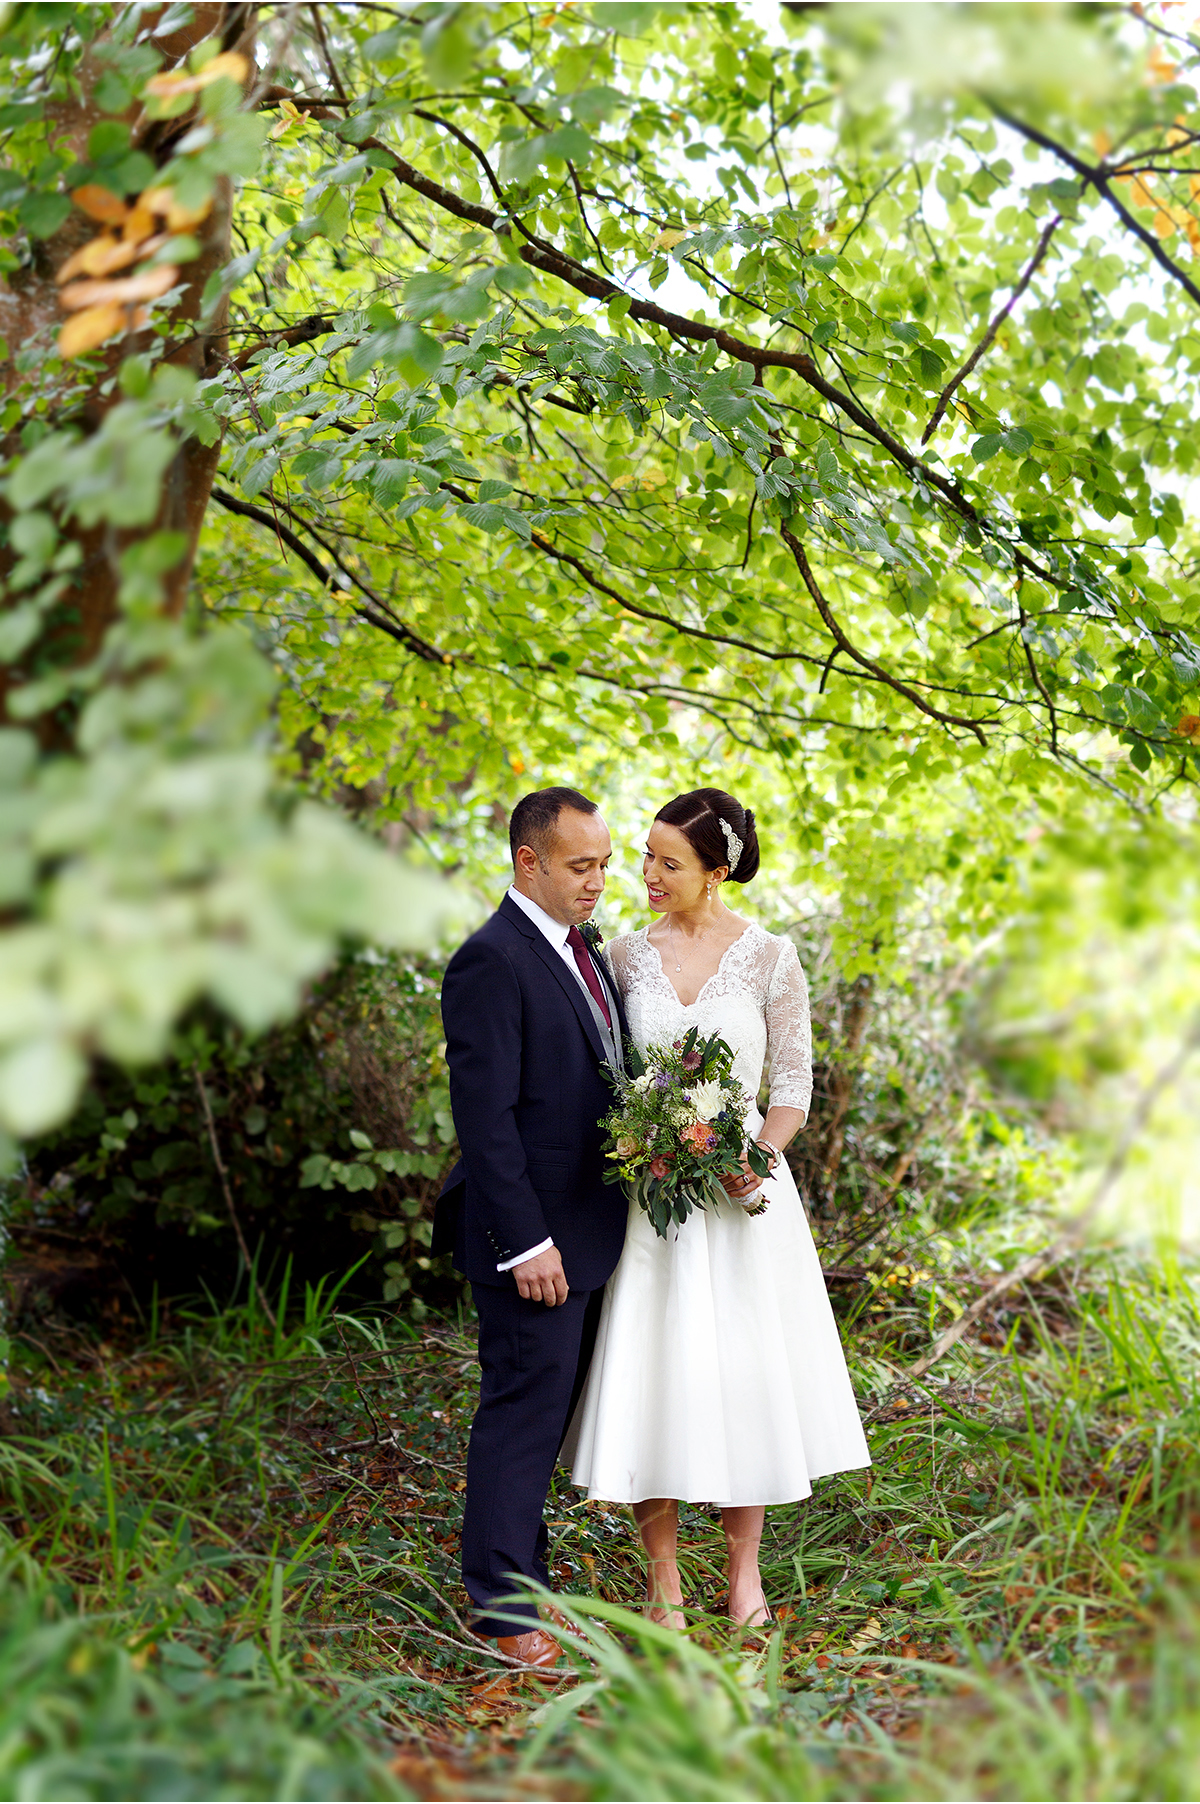 Carrig Country House garden wedding